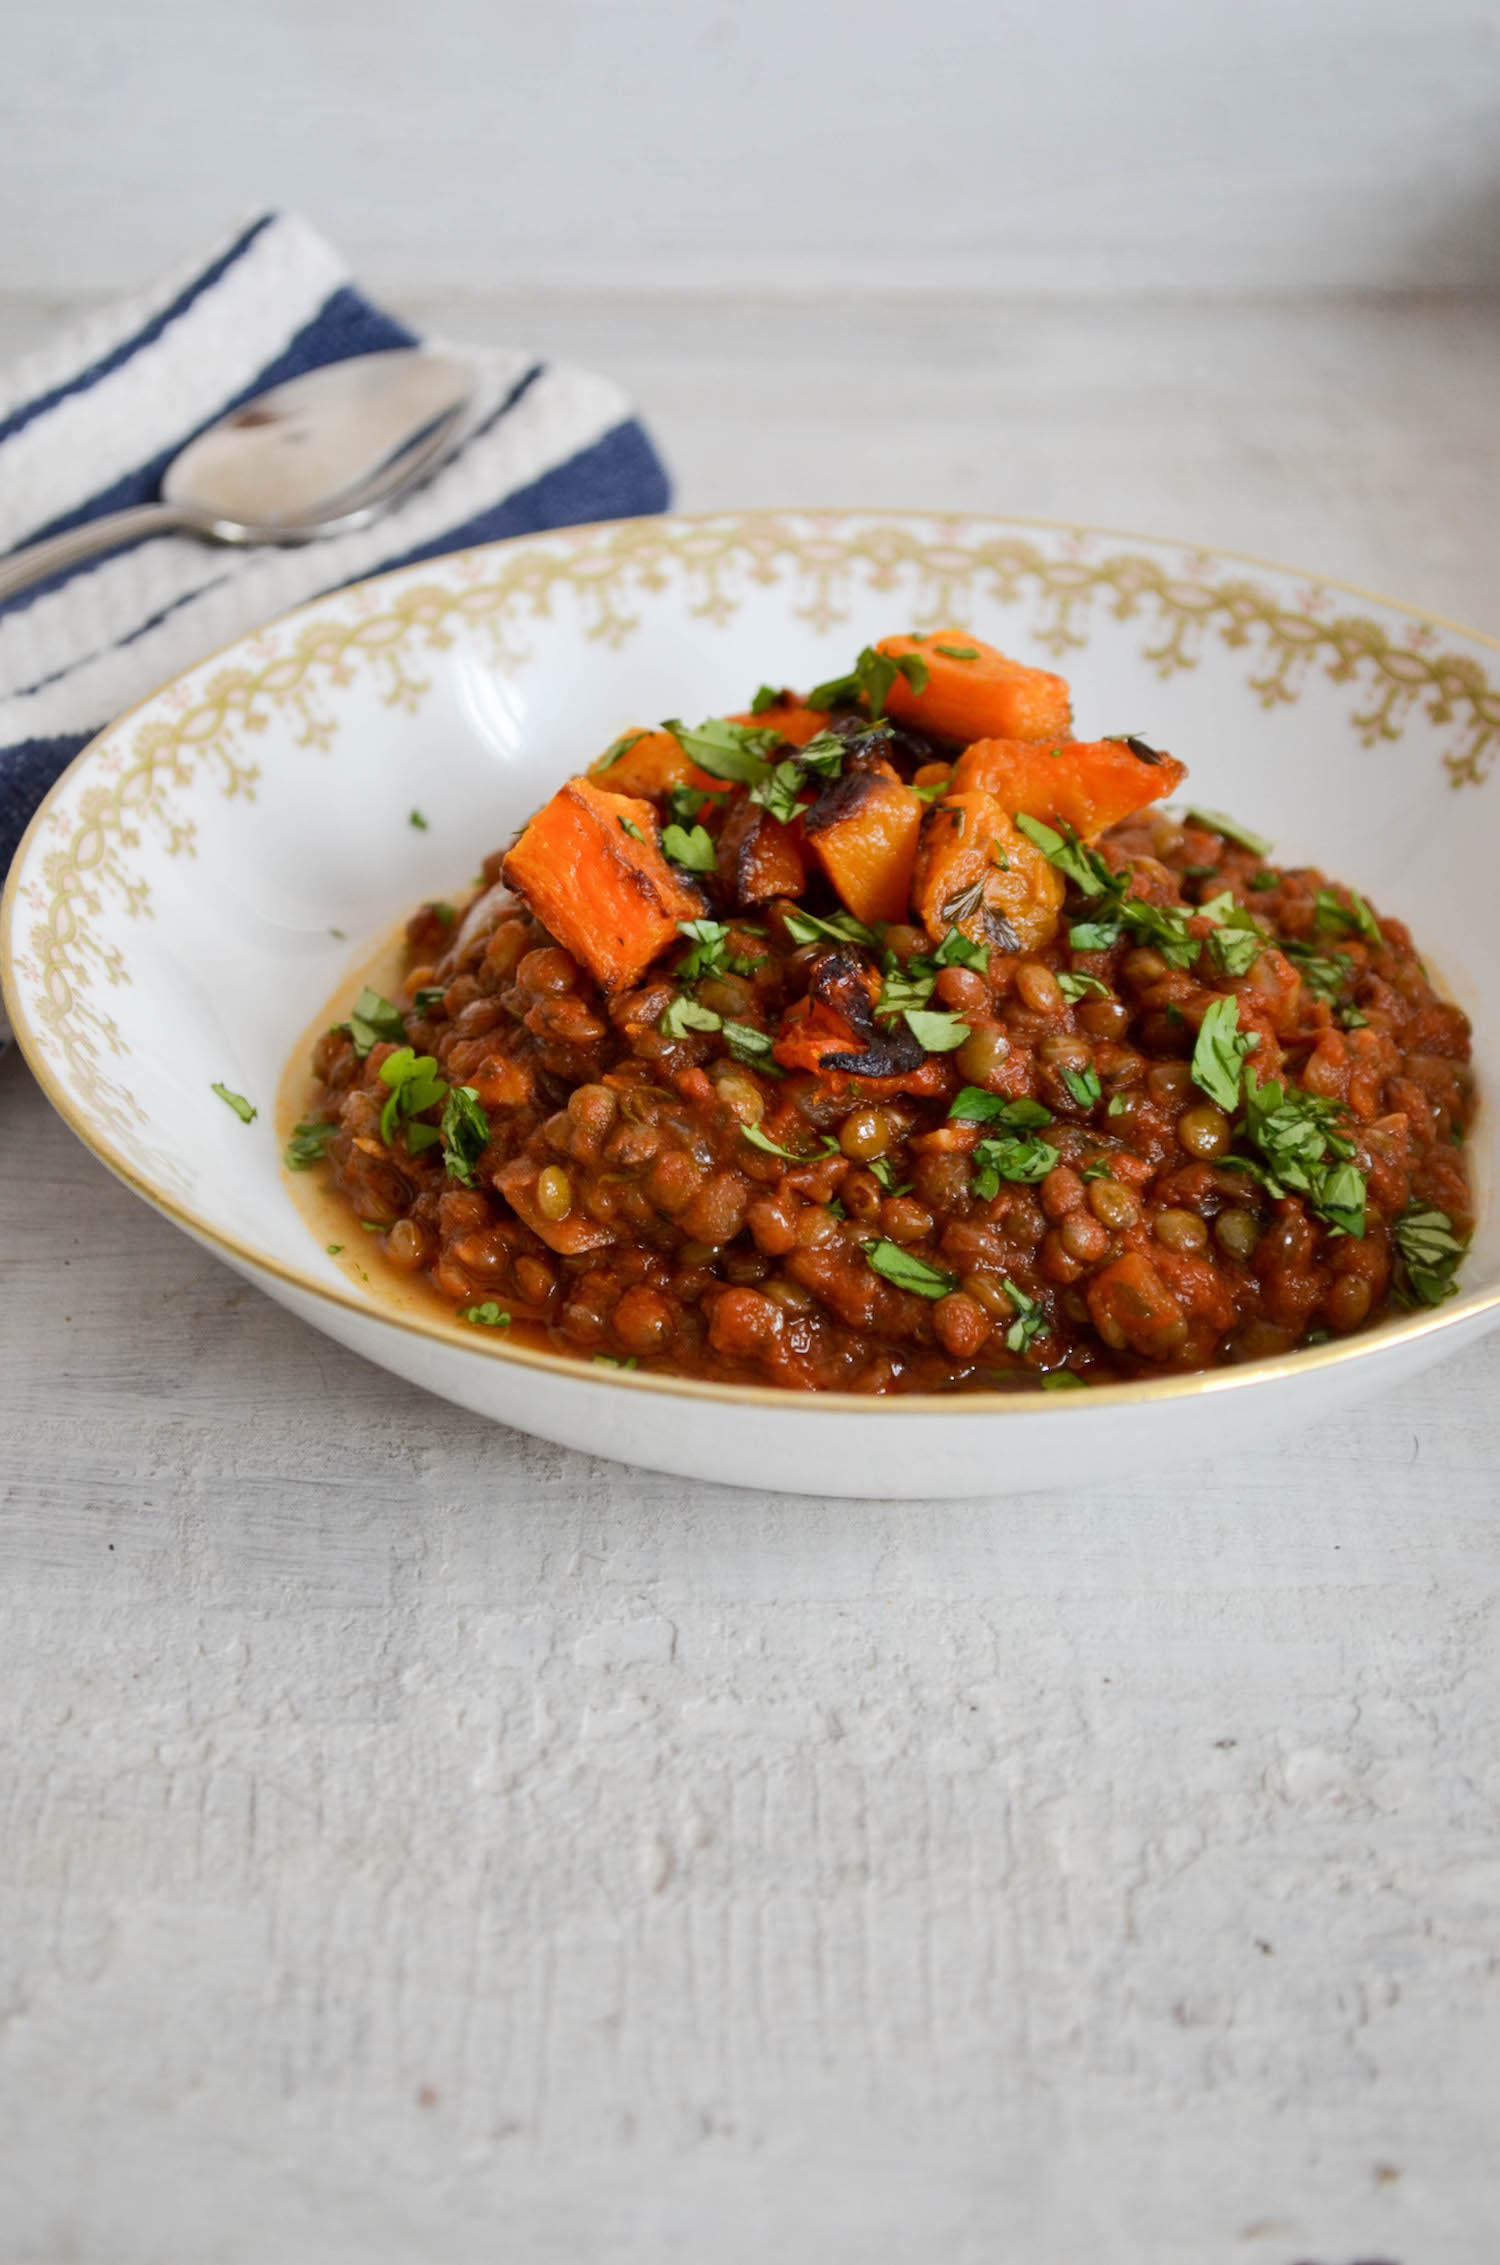 French Lentil Chili Get the Recipe at In Jennies Kitchen